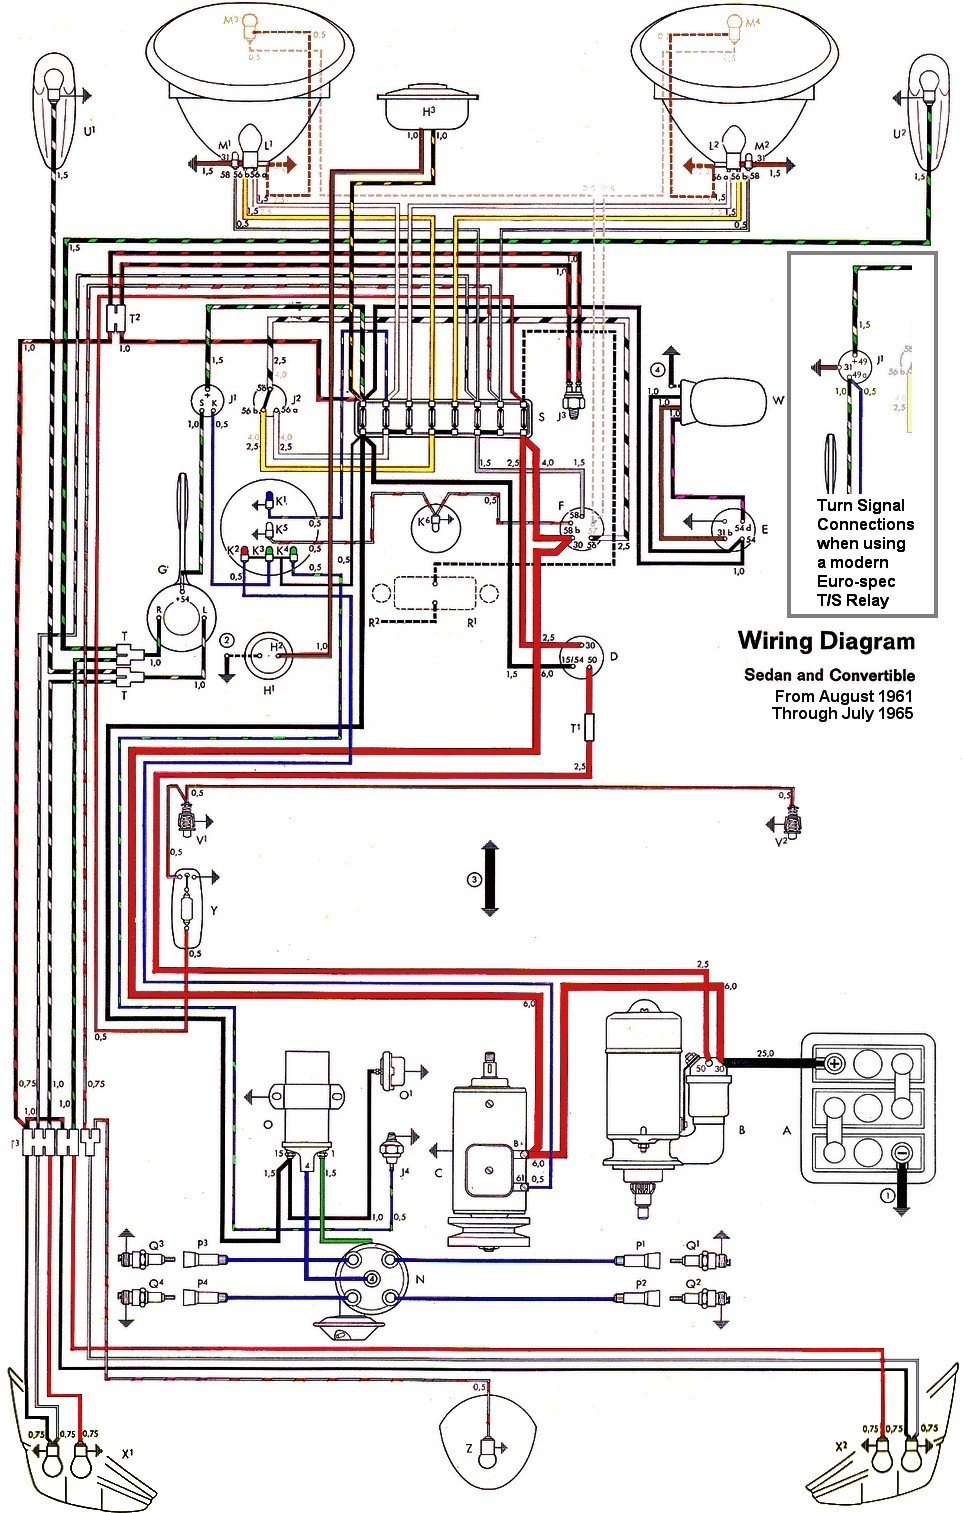 bug_62 65withinset wiring diagram vw beetle sedan and convertible 1961 1965 vw 1968 vw bus wiring diagram at bakdesigns.co